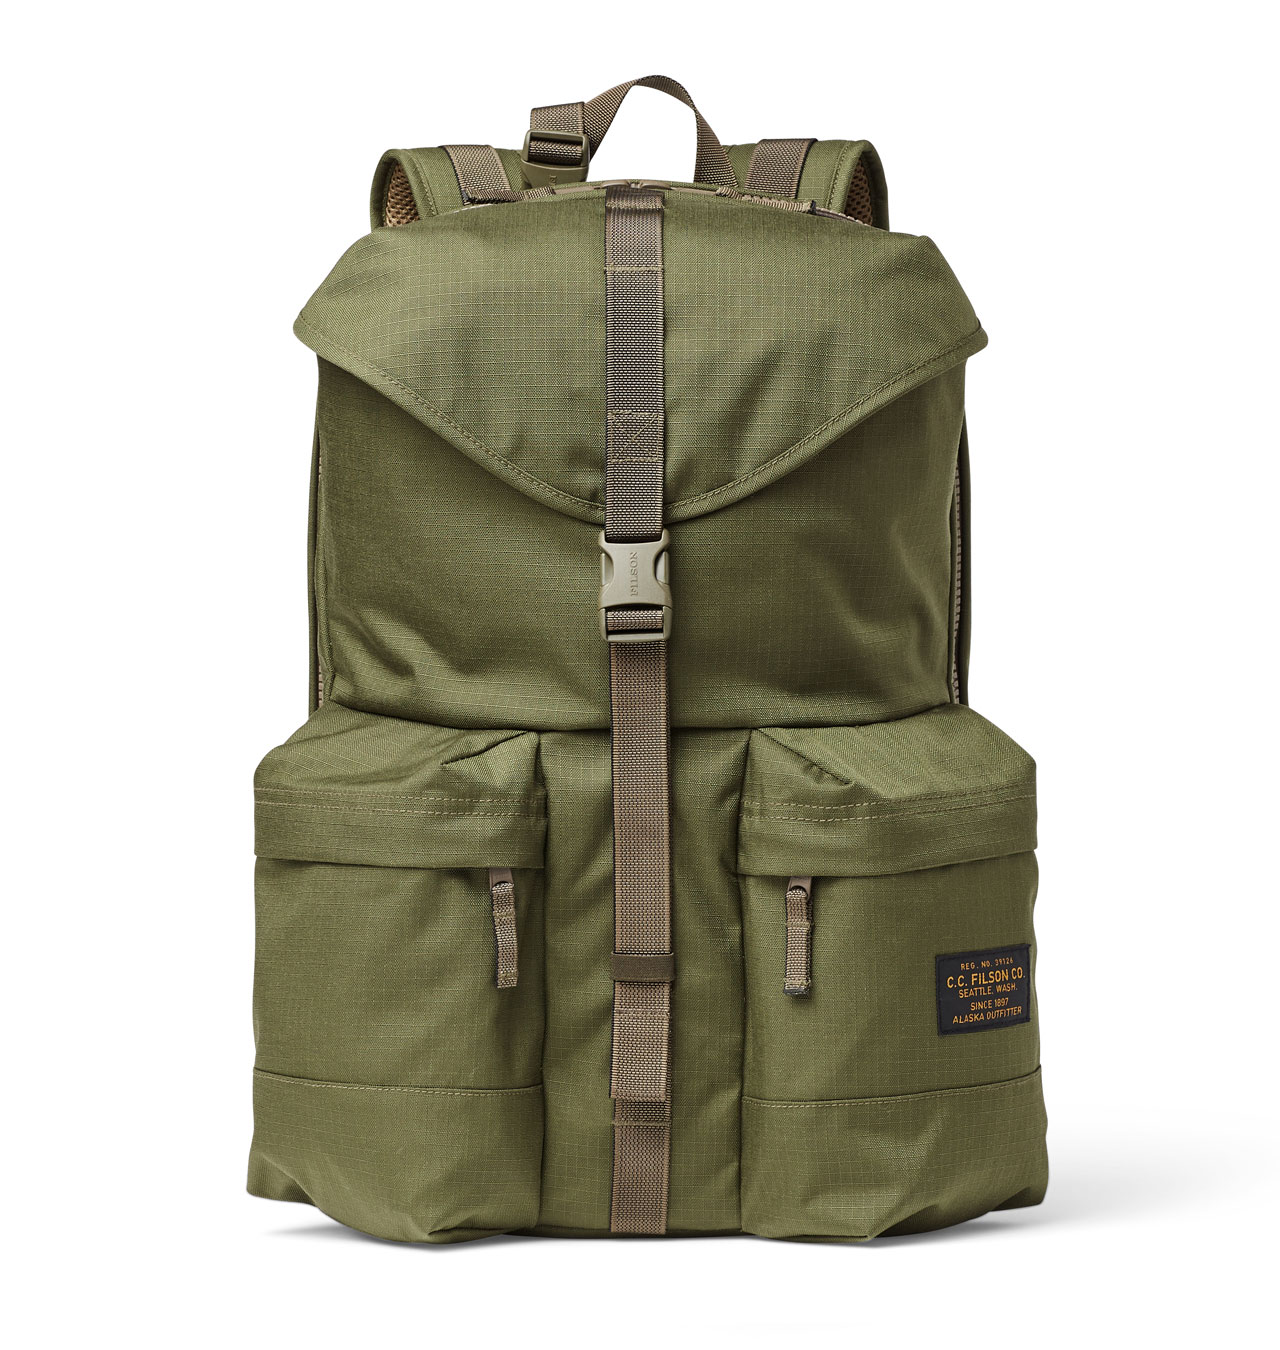 Filson - Ripstop Nylon Backpack - Surplus Green